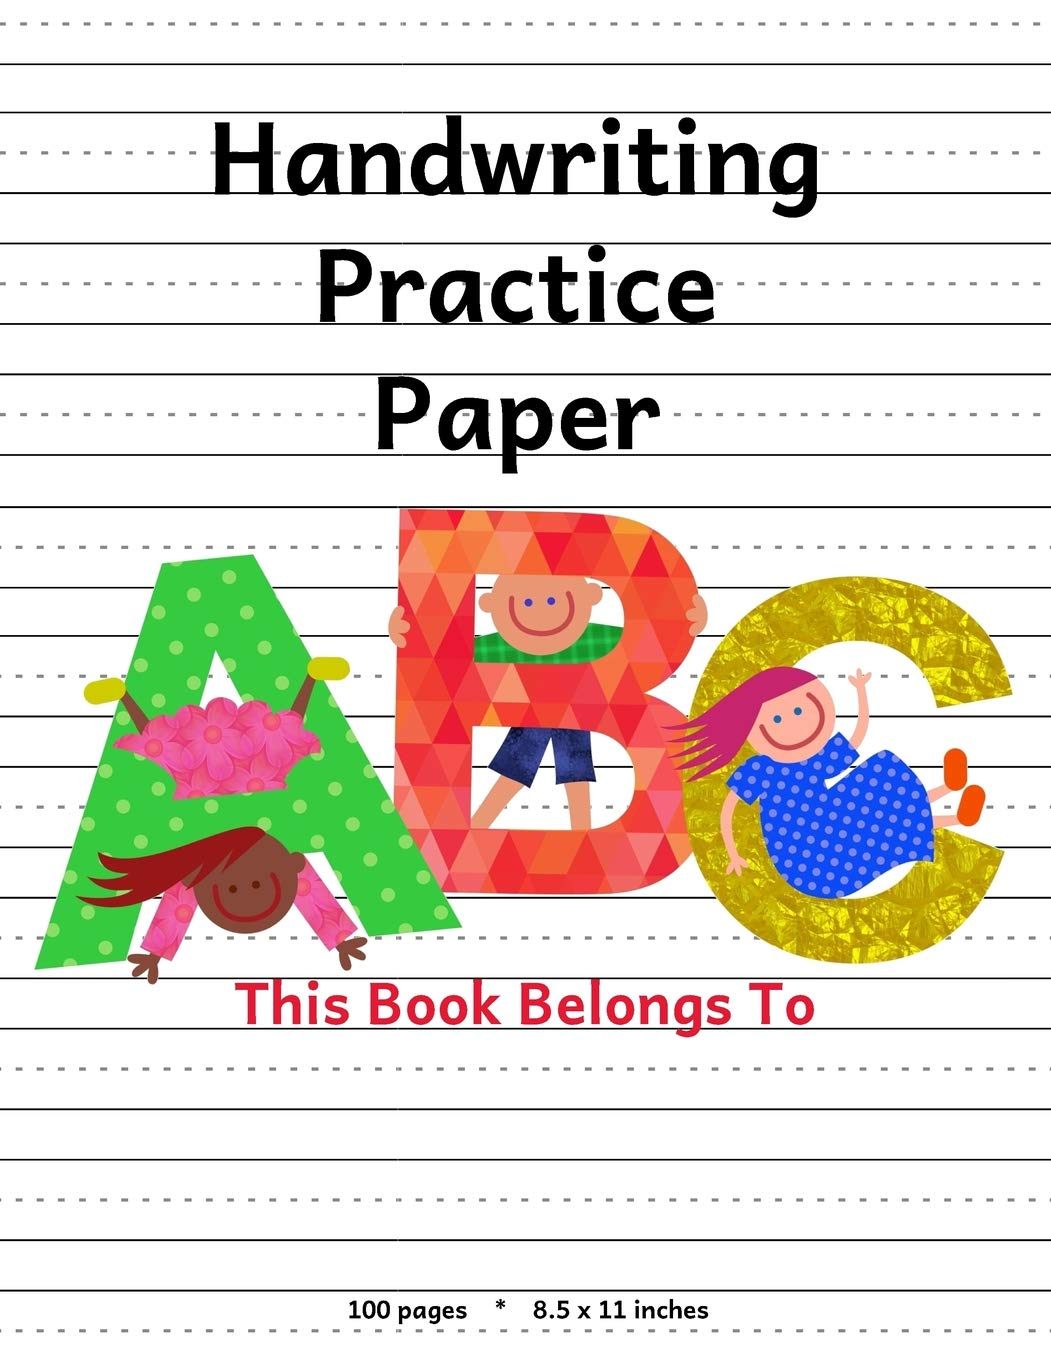 Handwriting Practice Paper Notebook Students product image